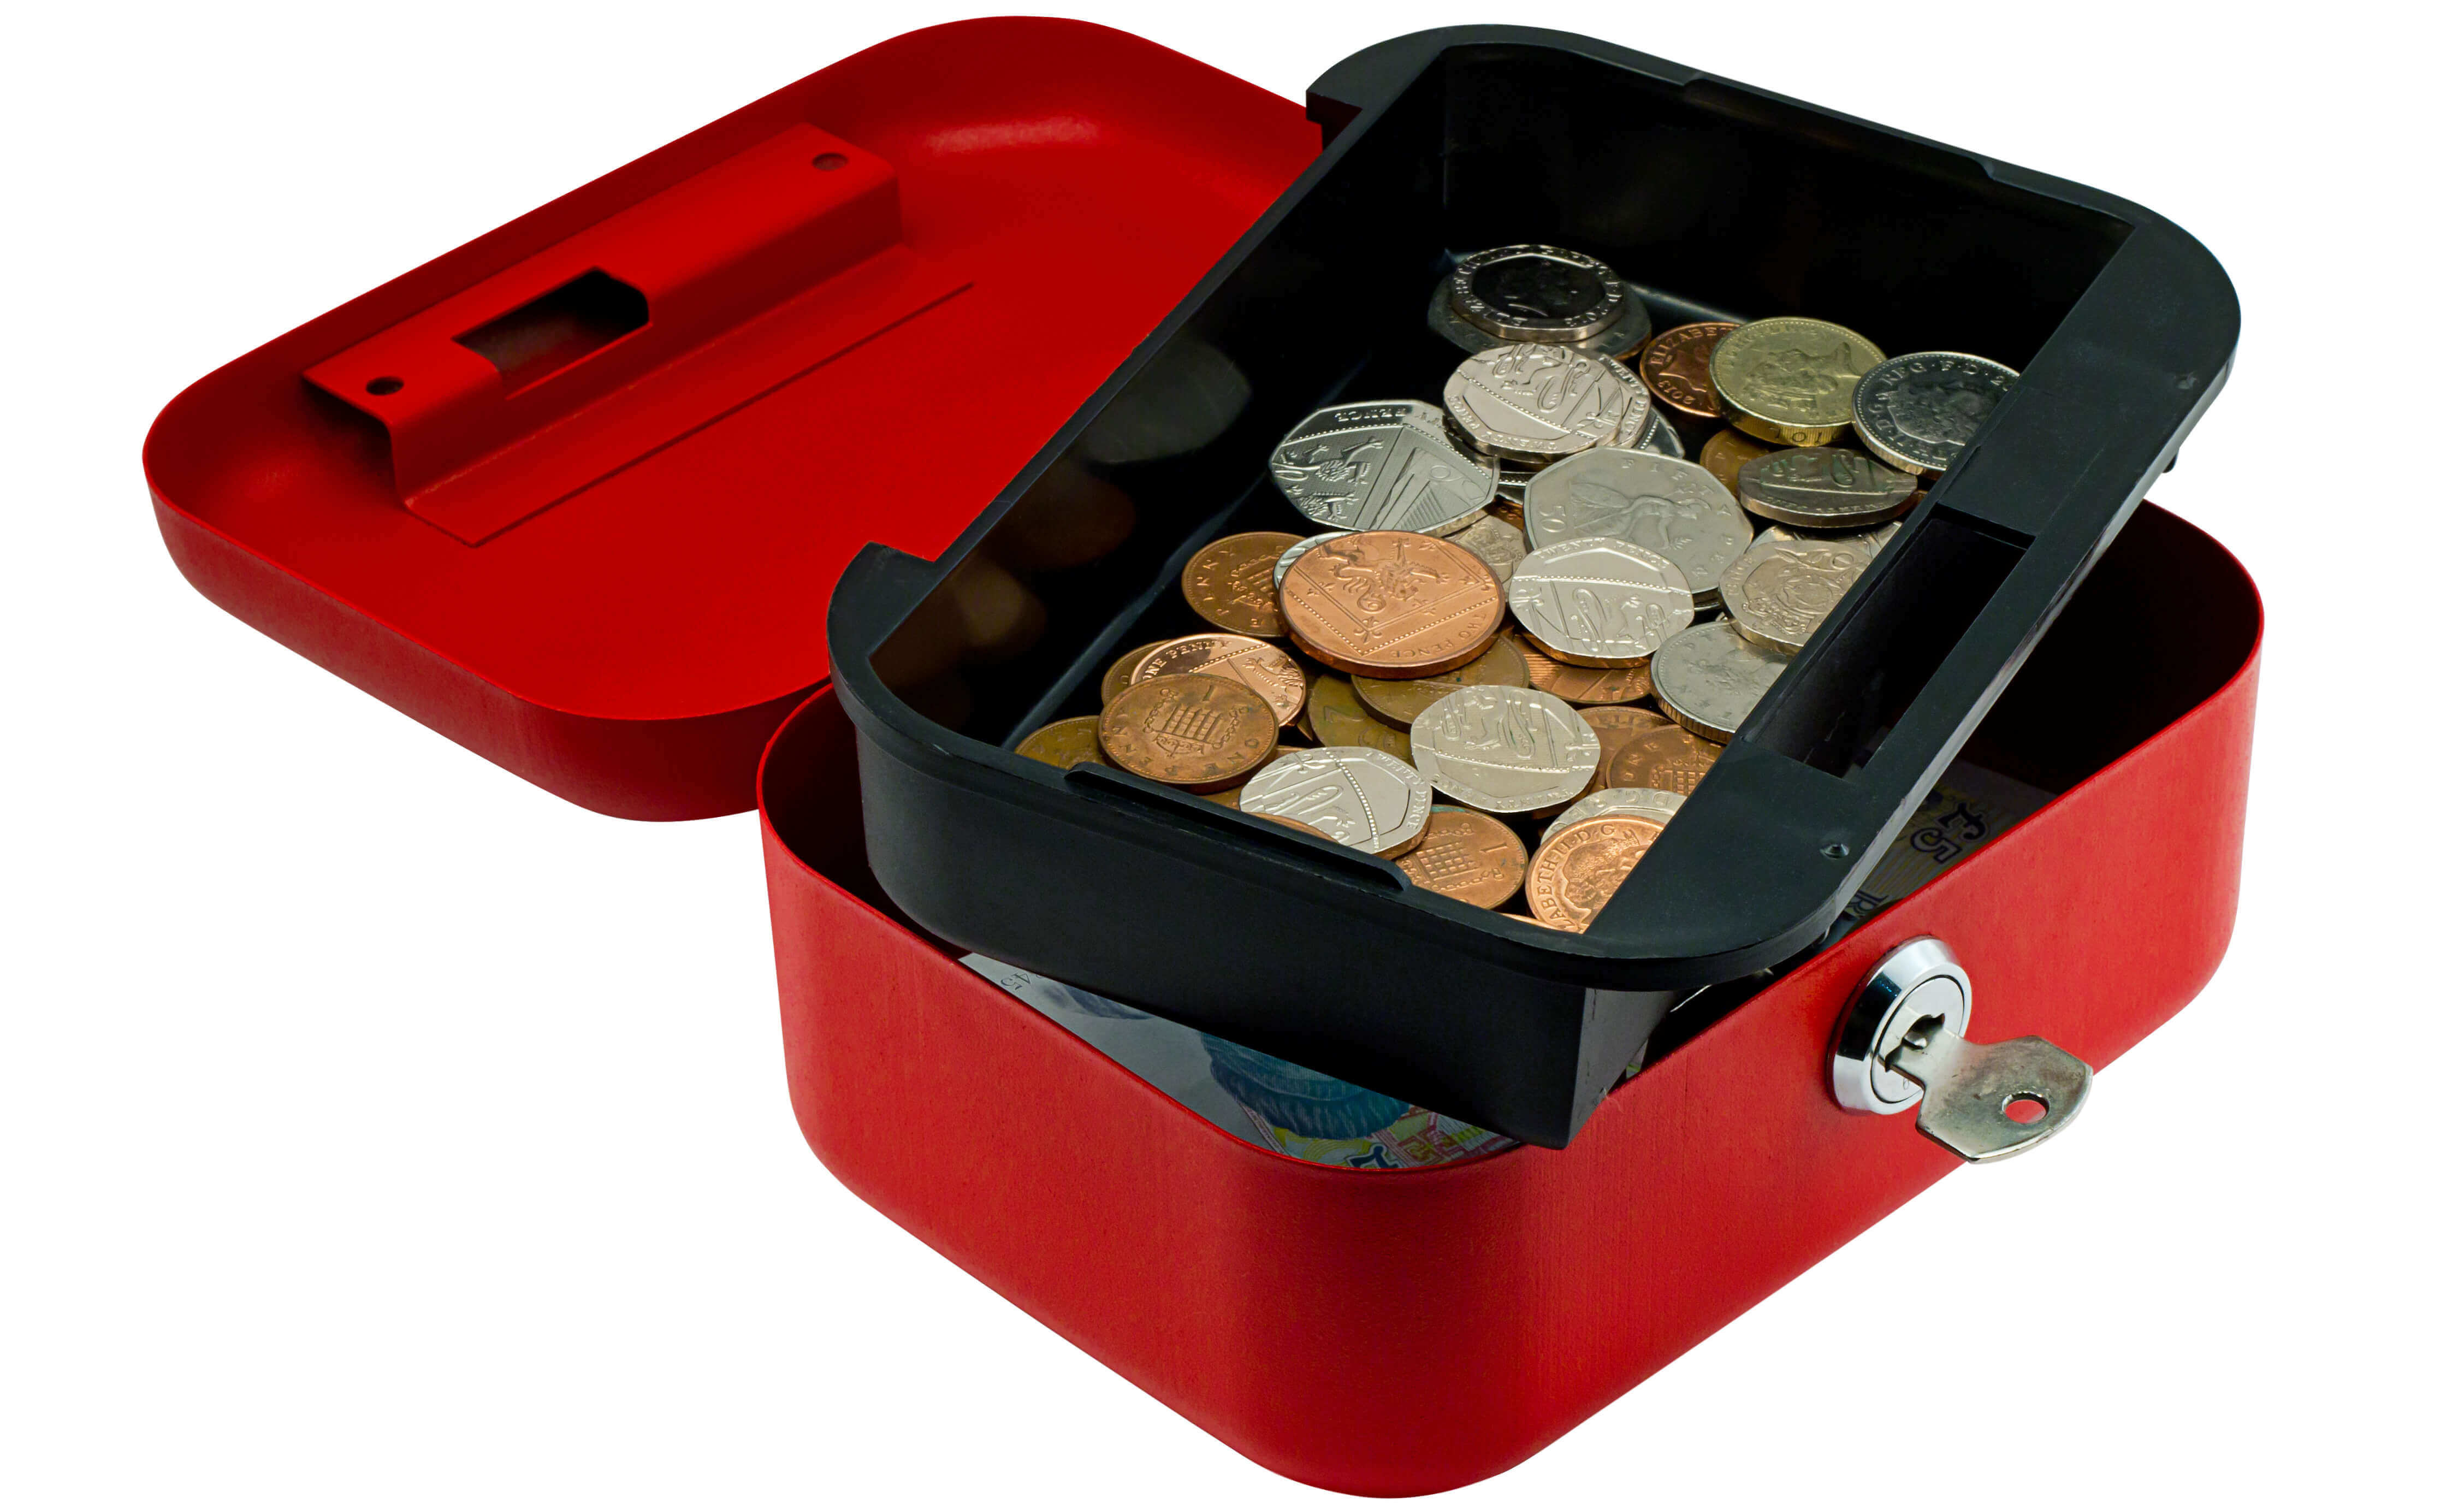 Lock box for petty cash is one of the most important part of petty cash accounting